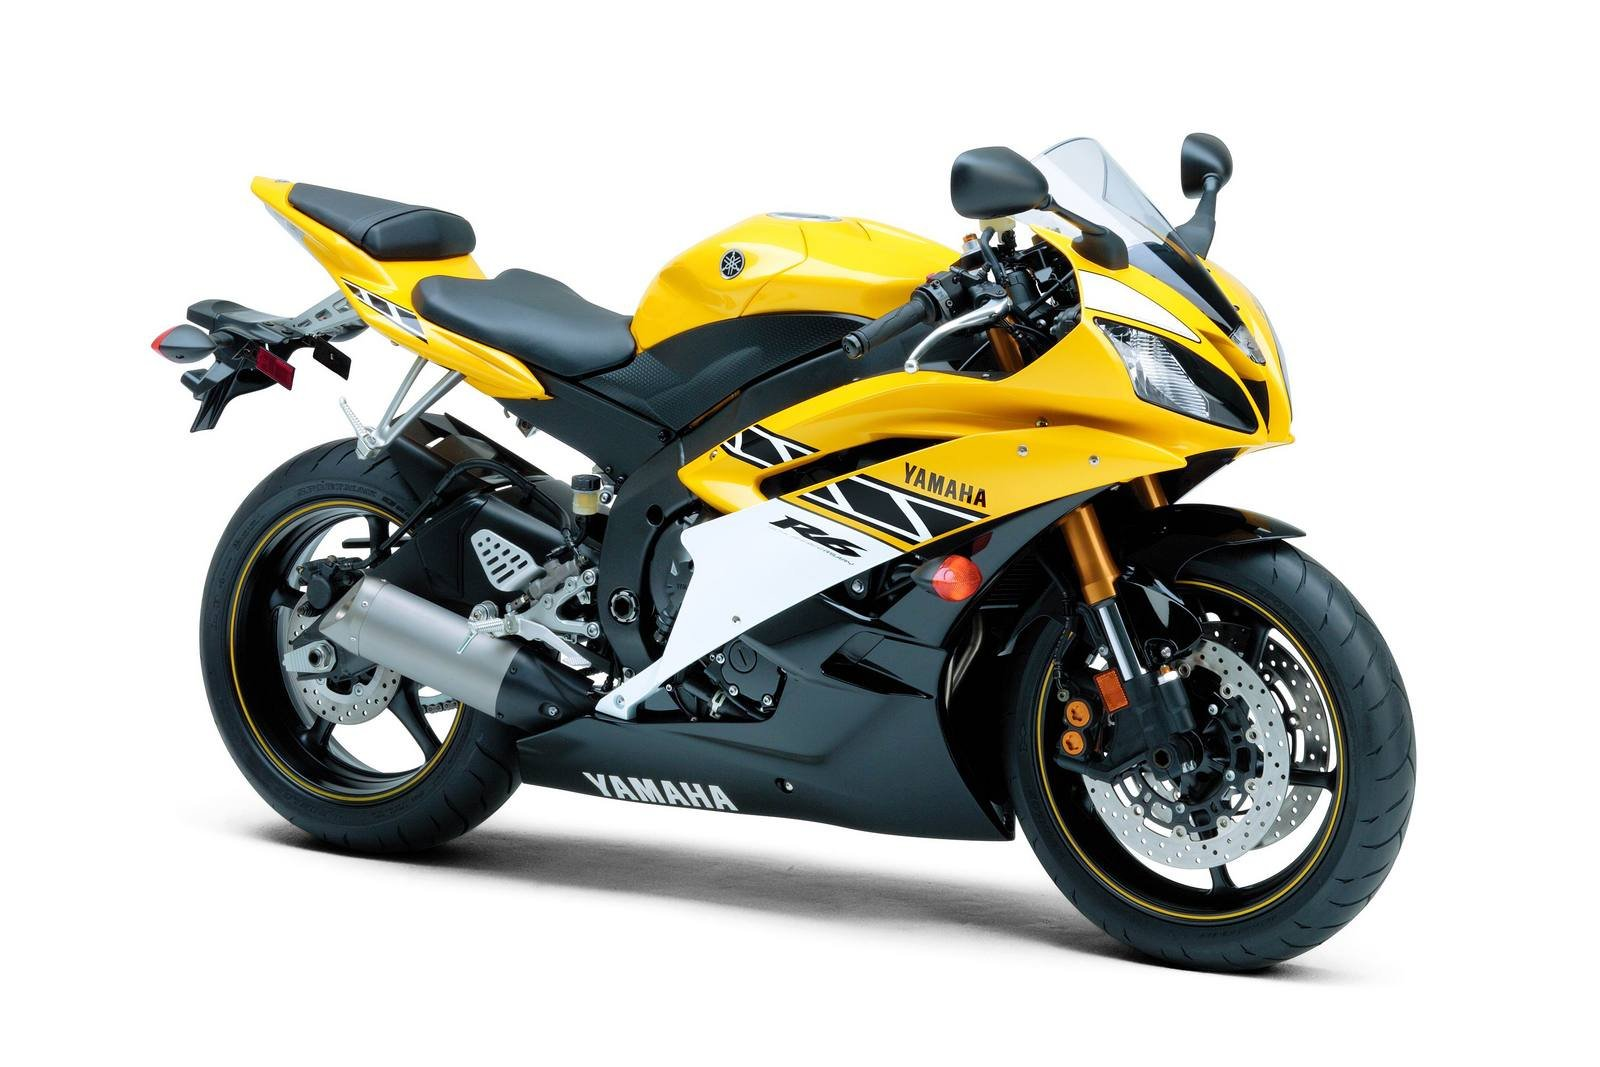 2006 yamaha yzf r6 review gallery top speed for 2006 yamaha yzf r6